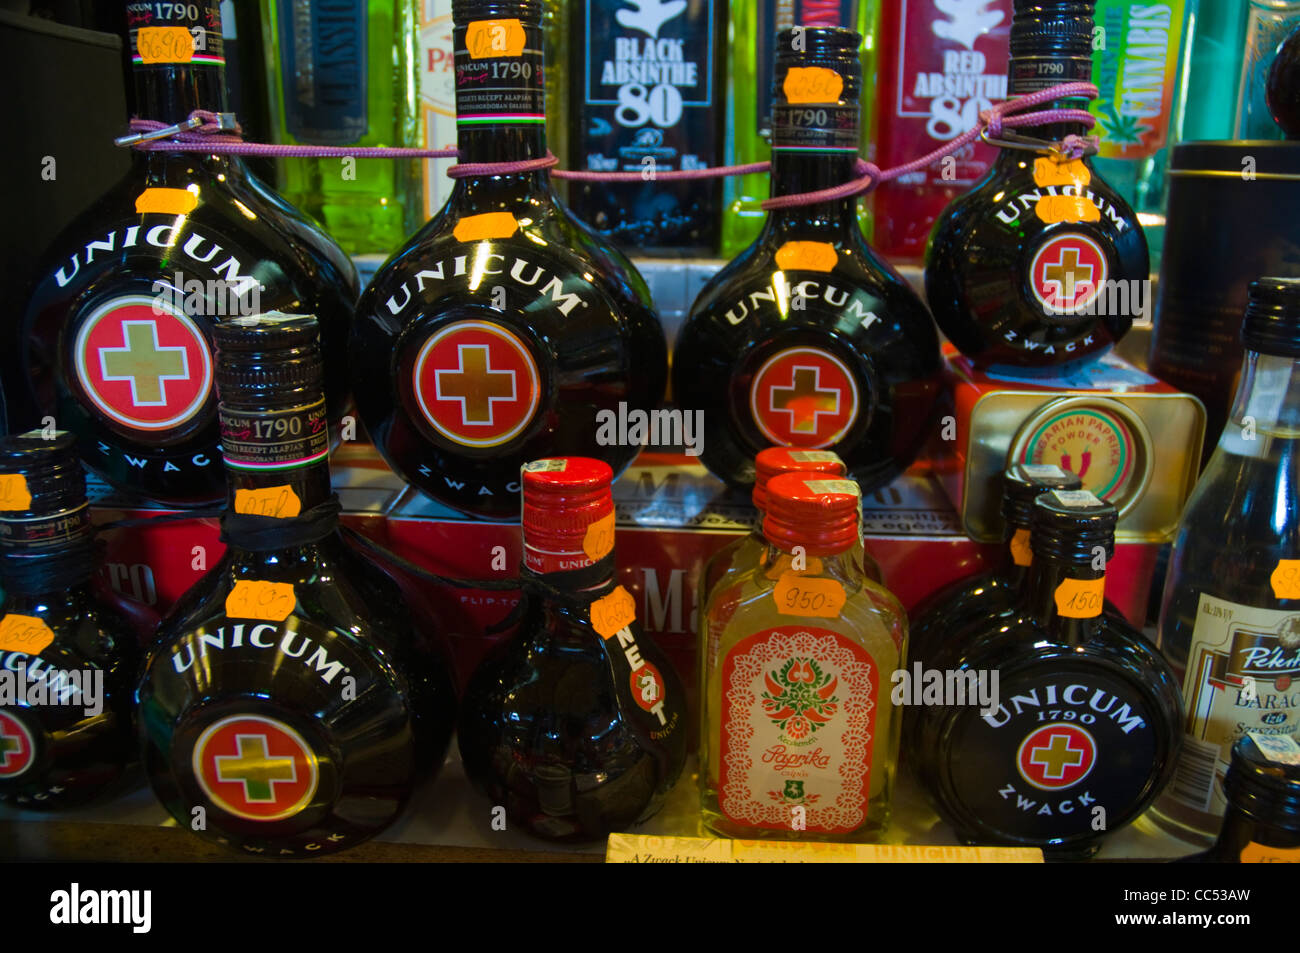 Unicum and other local spirits Budapest Hungary Europe - Stock Image